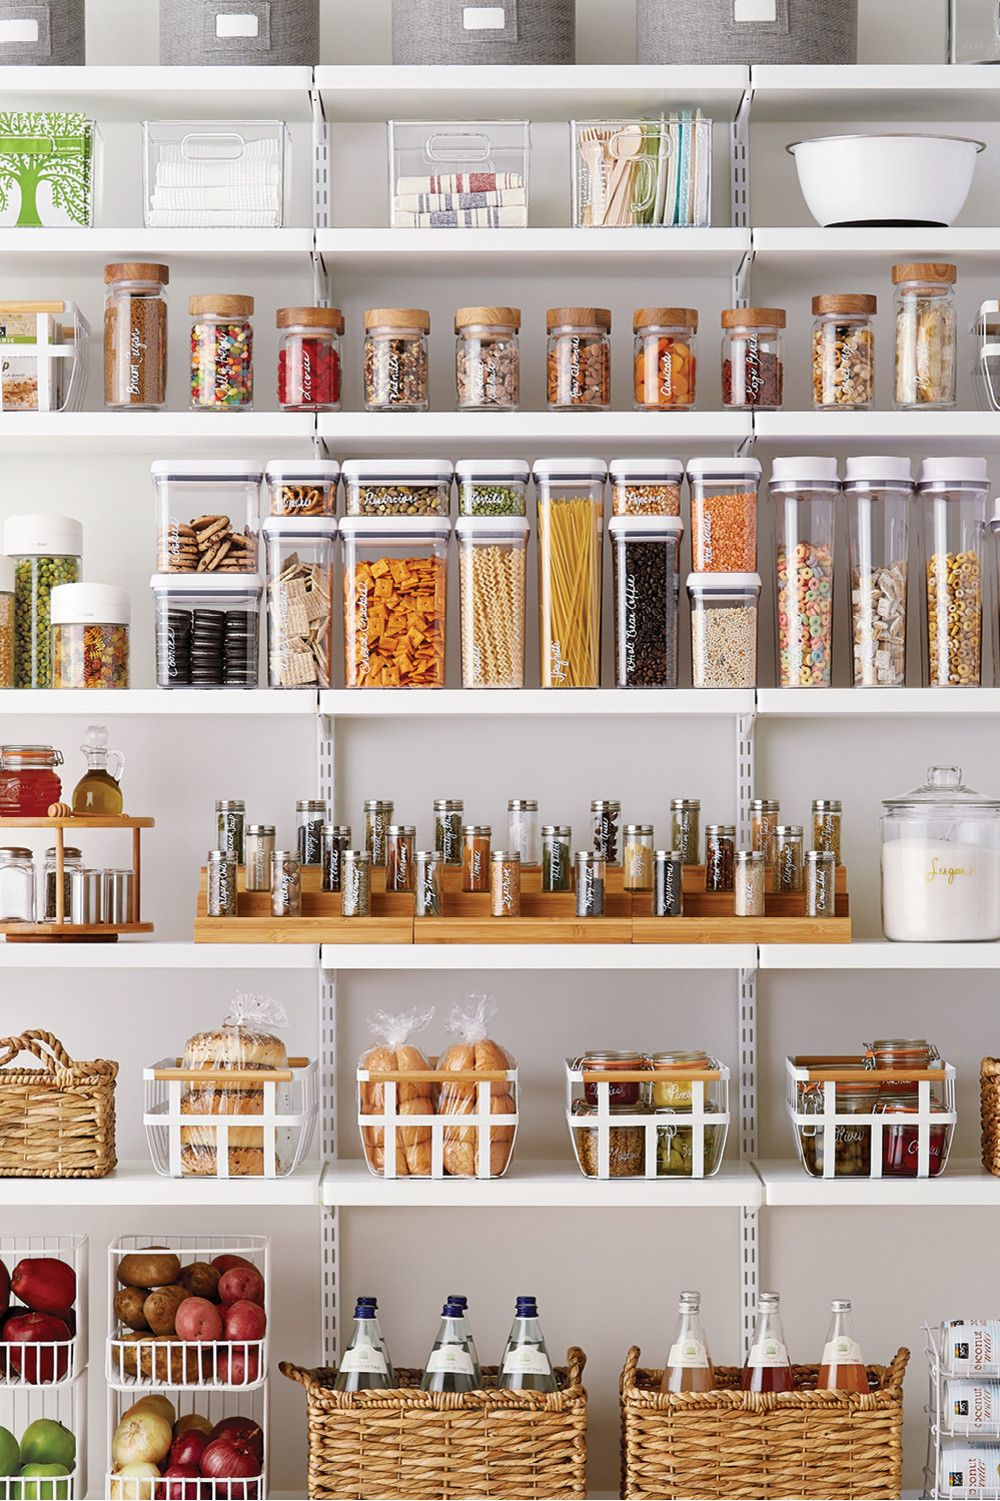 Merveilleux Kitchen Refresh: Pantry | The Container Store Butler Pantry, Pantry Storage  Containers, Pantry